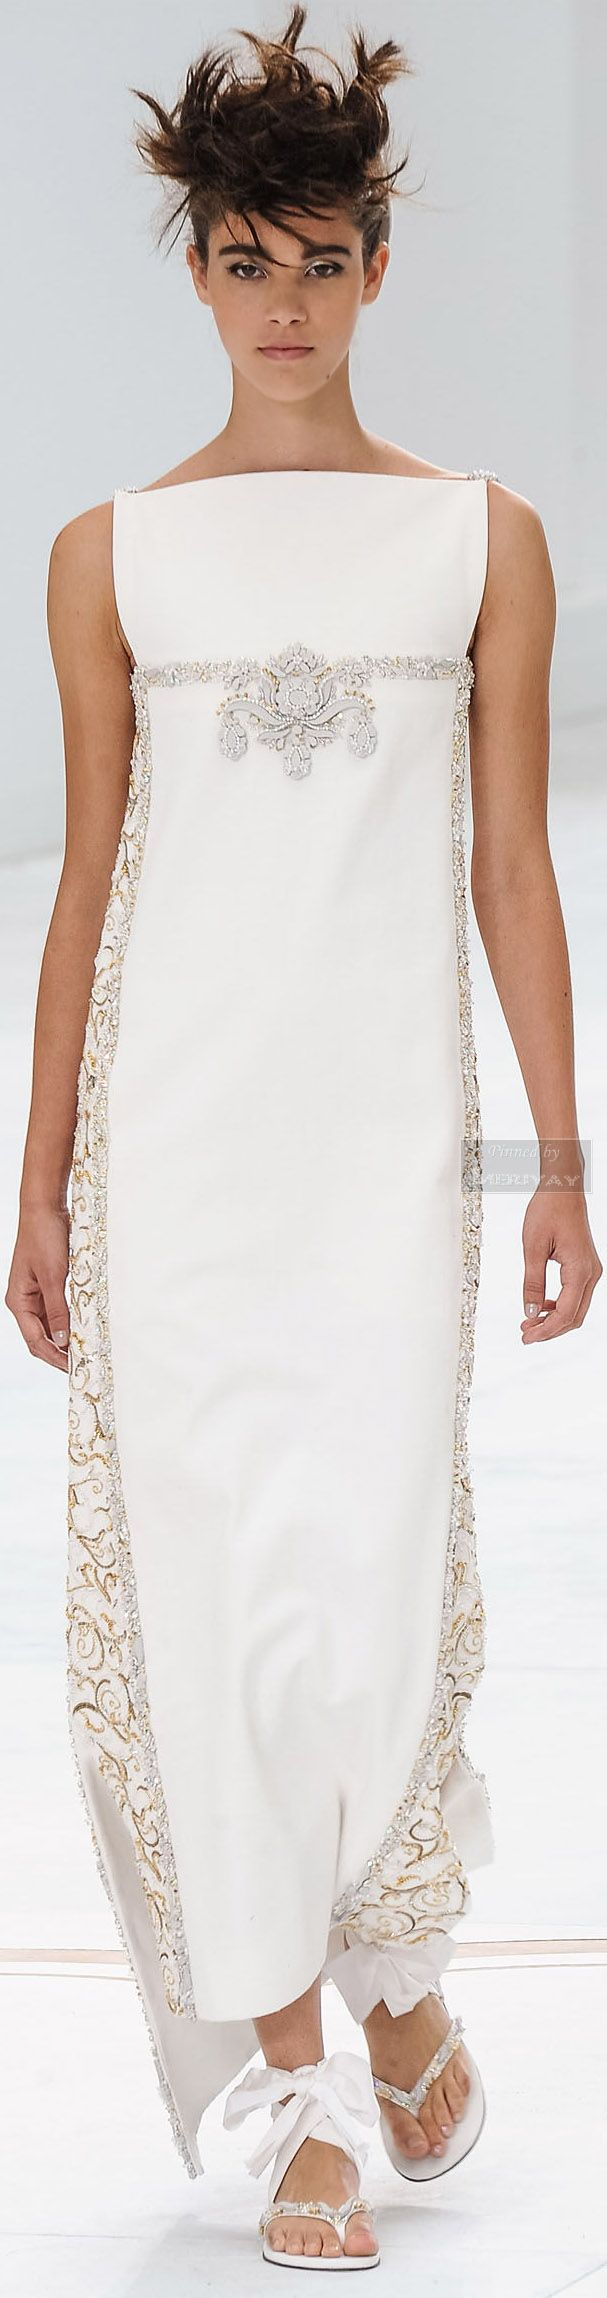 Chanel. One can't see the shoulders very well but they are jeweled/embroidered. #white